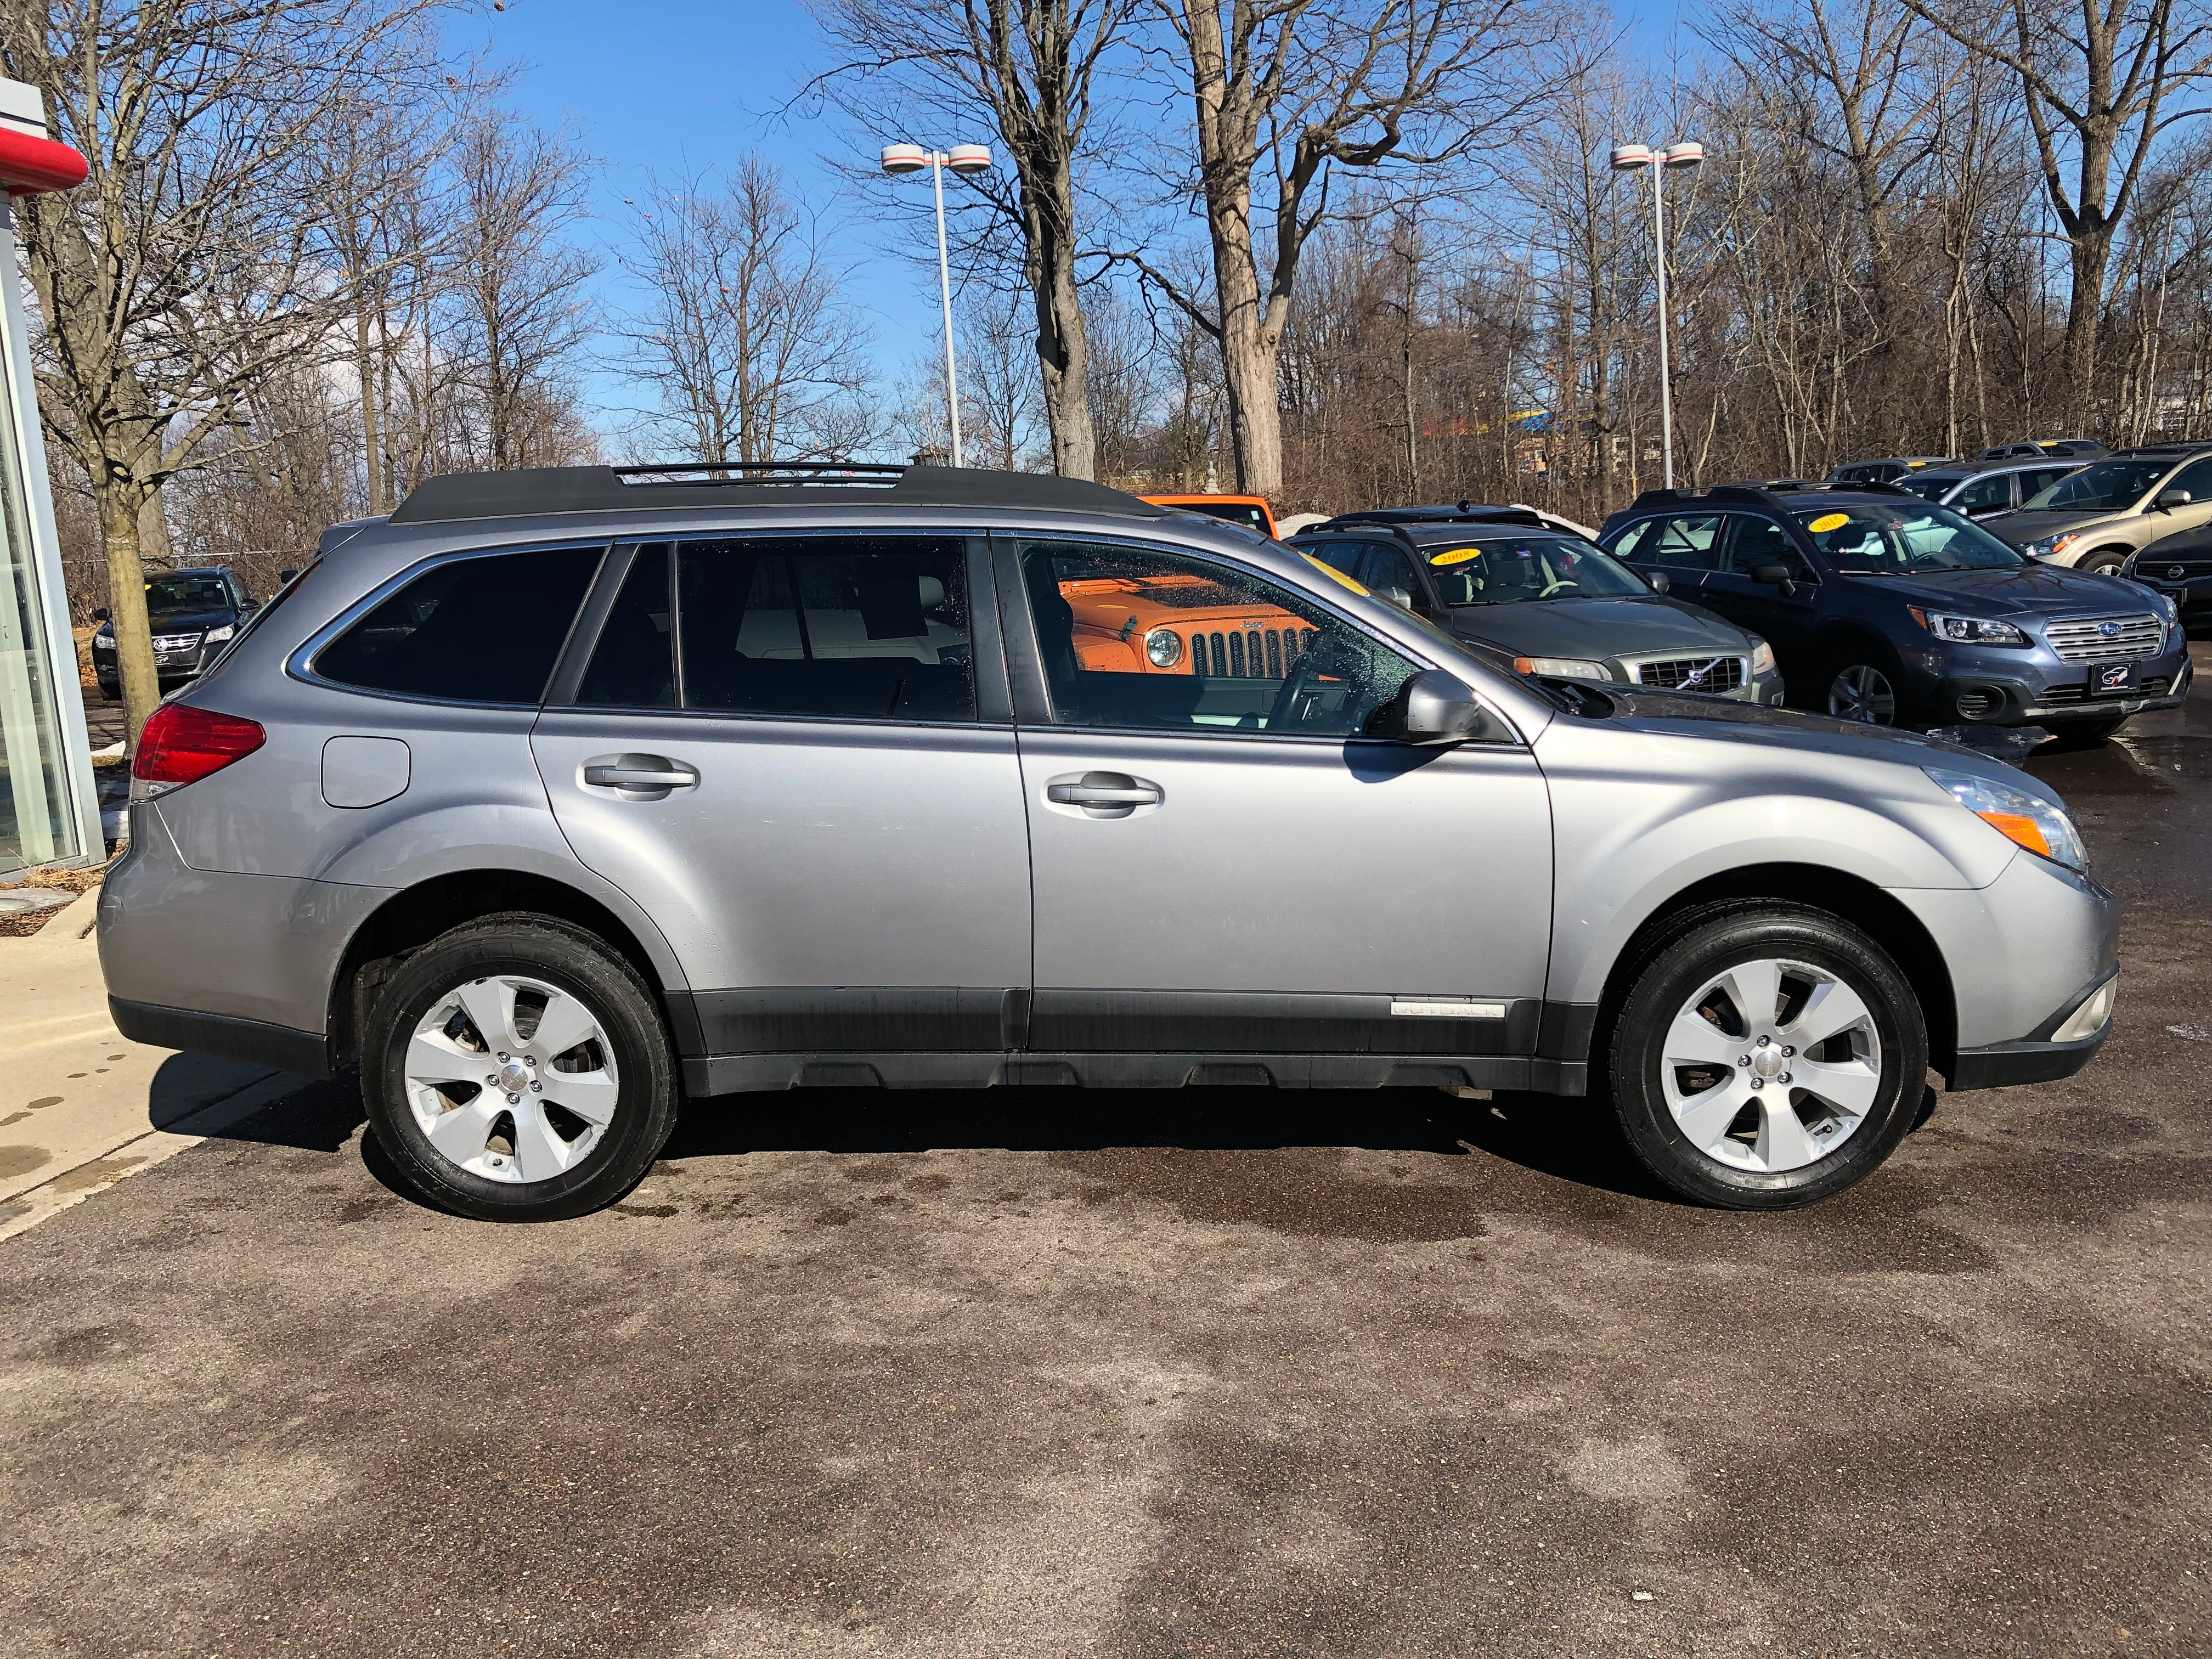 Used 2011 Subaru Outback For Sale at Carter's Cars Inc